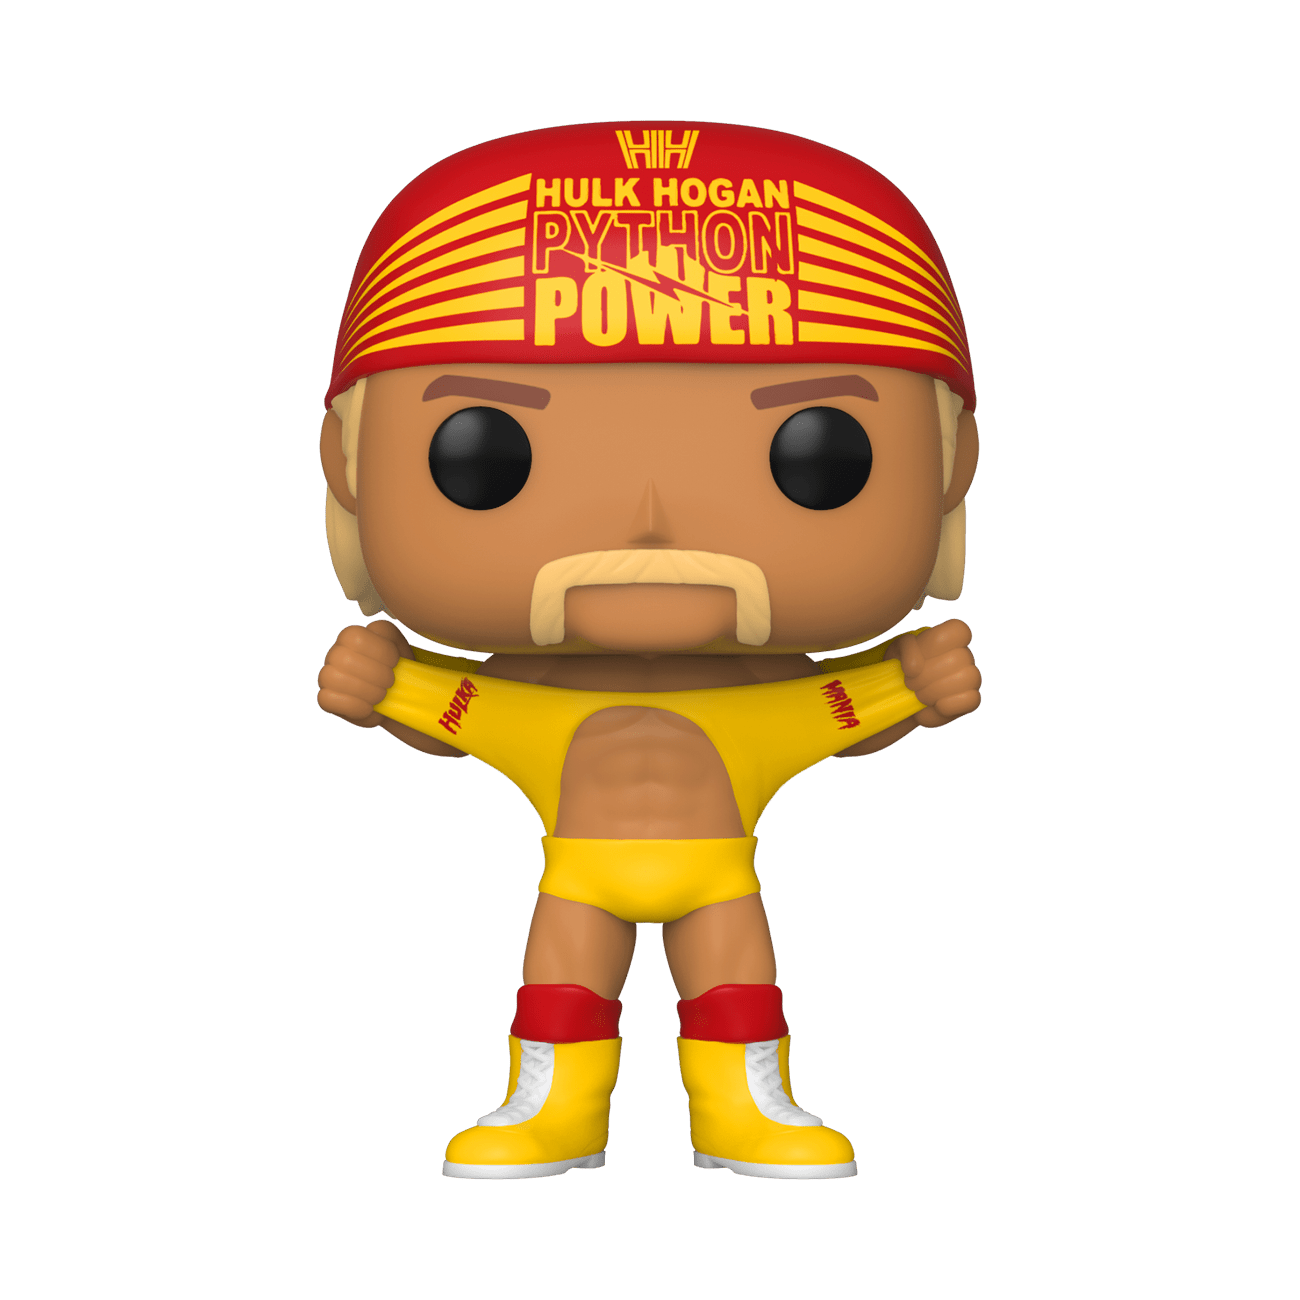 WWE Hulk Hogan Wrestlemania Exclusive Pop! Vinyl Figure